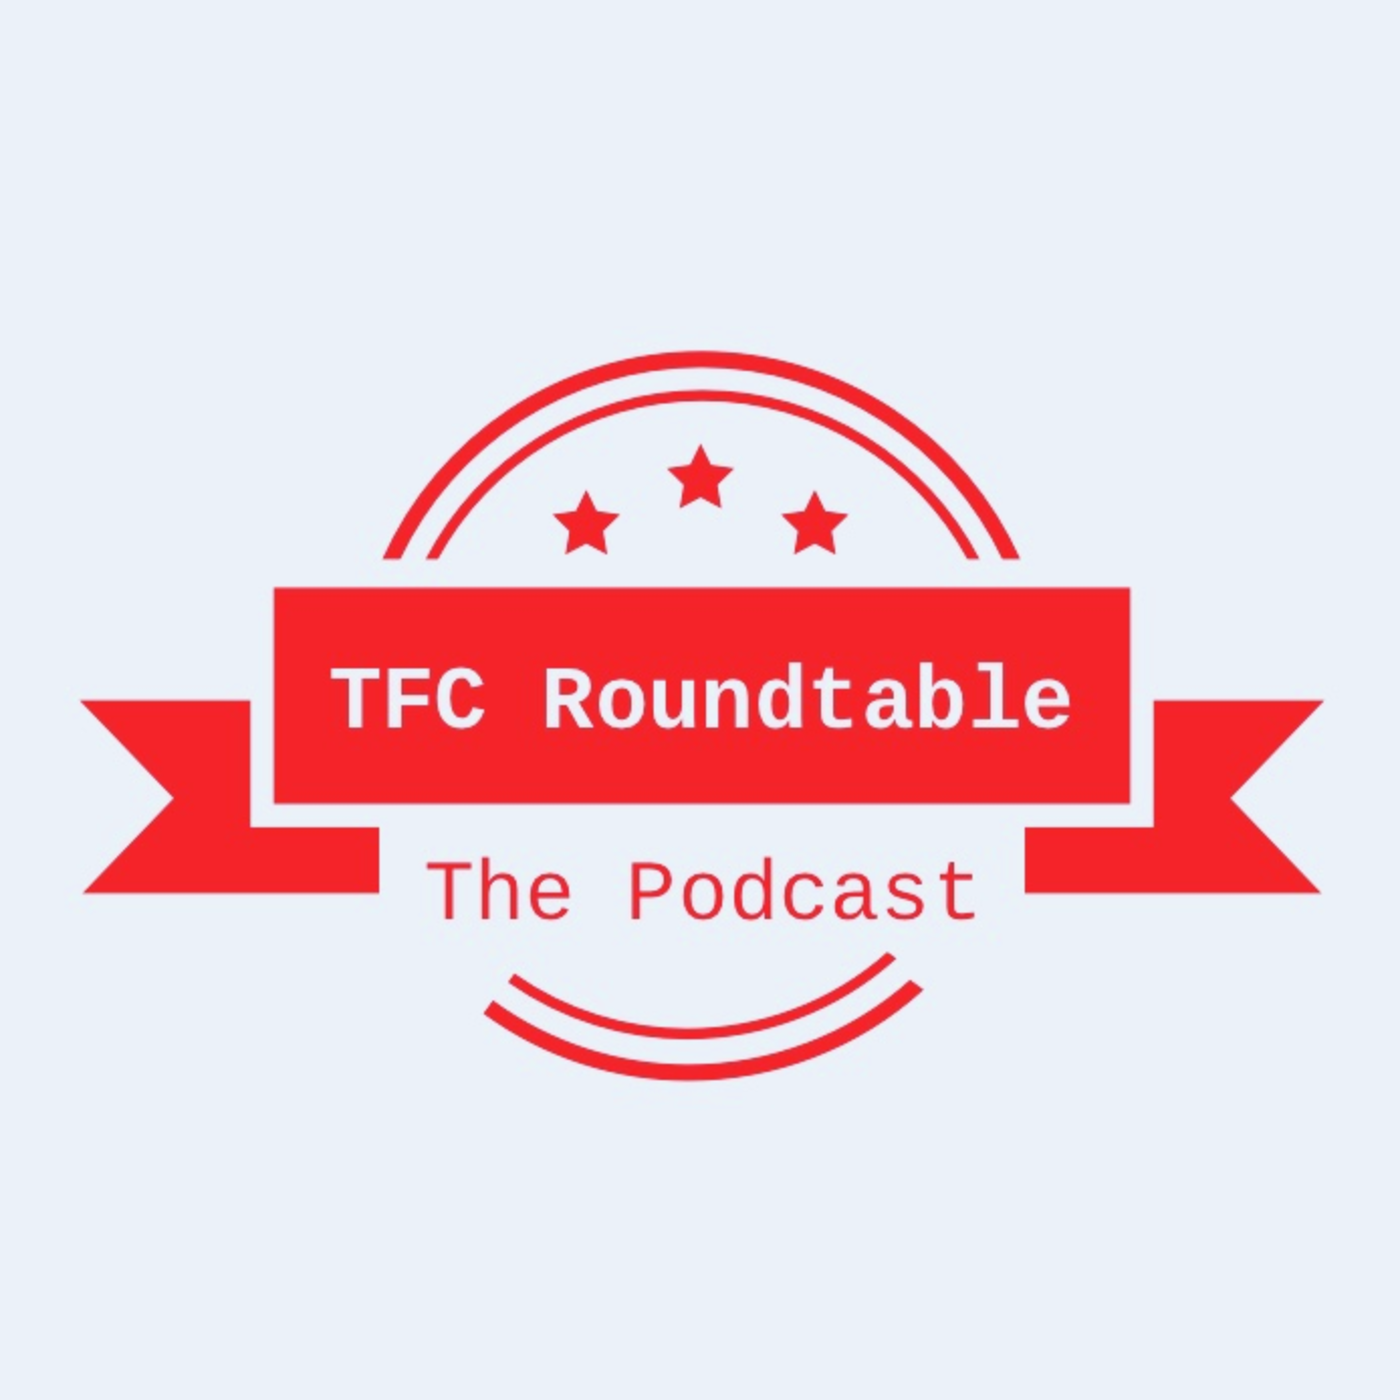 TFC Roundtable - The Podcast